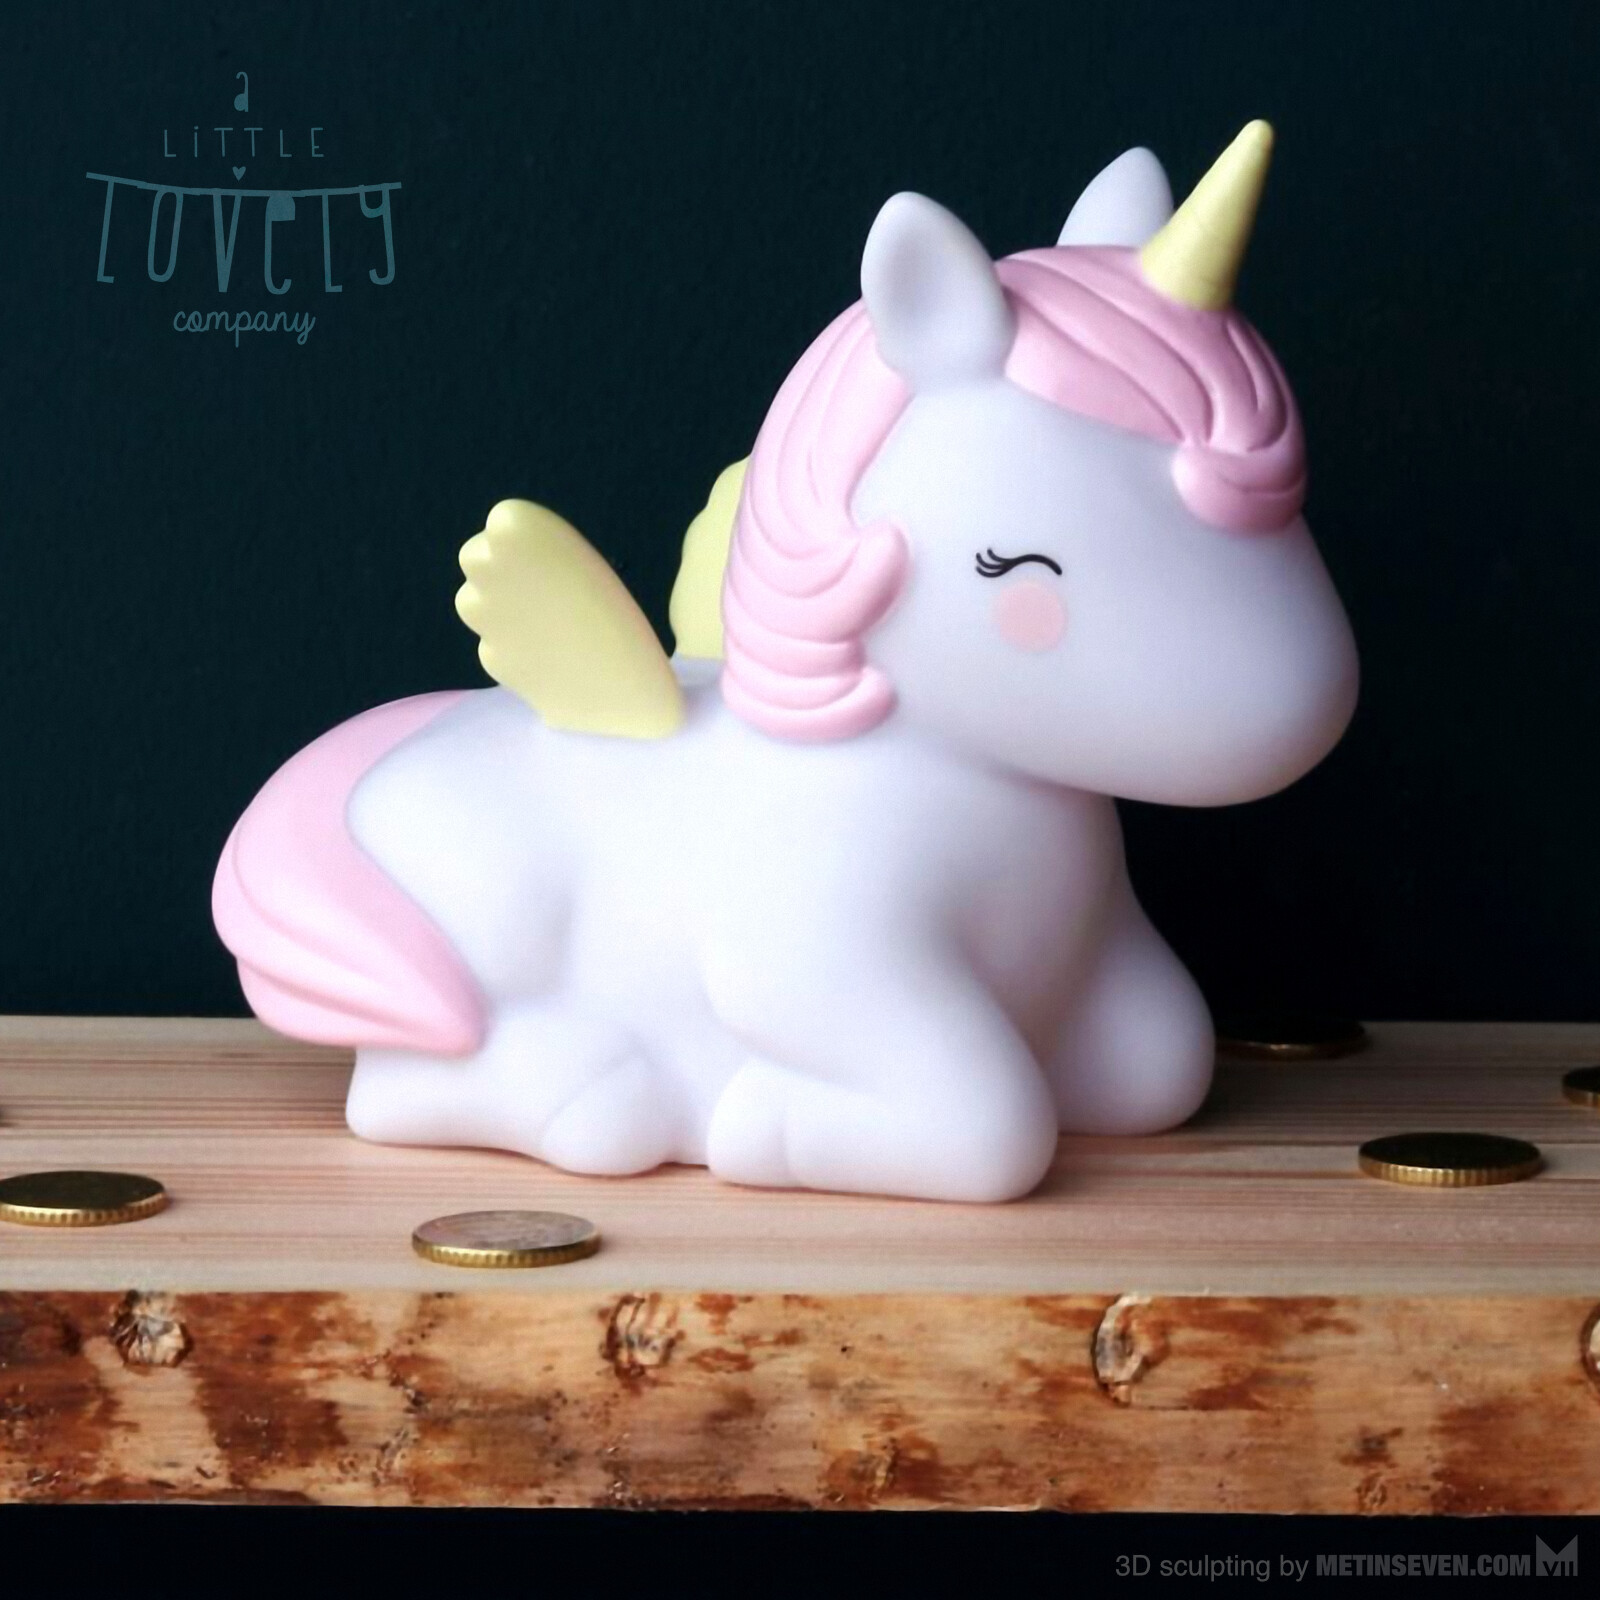 3D sculpting of a unicorn money-box for A Little Lovely Company